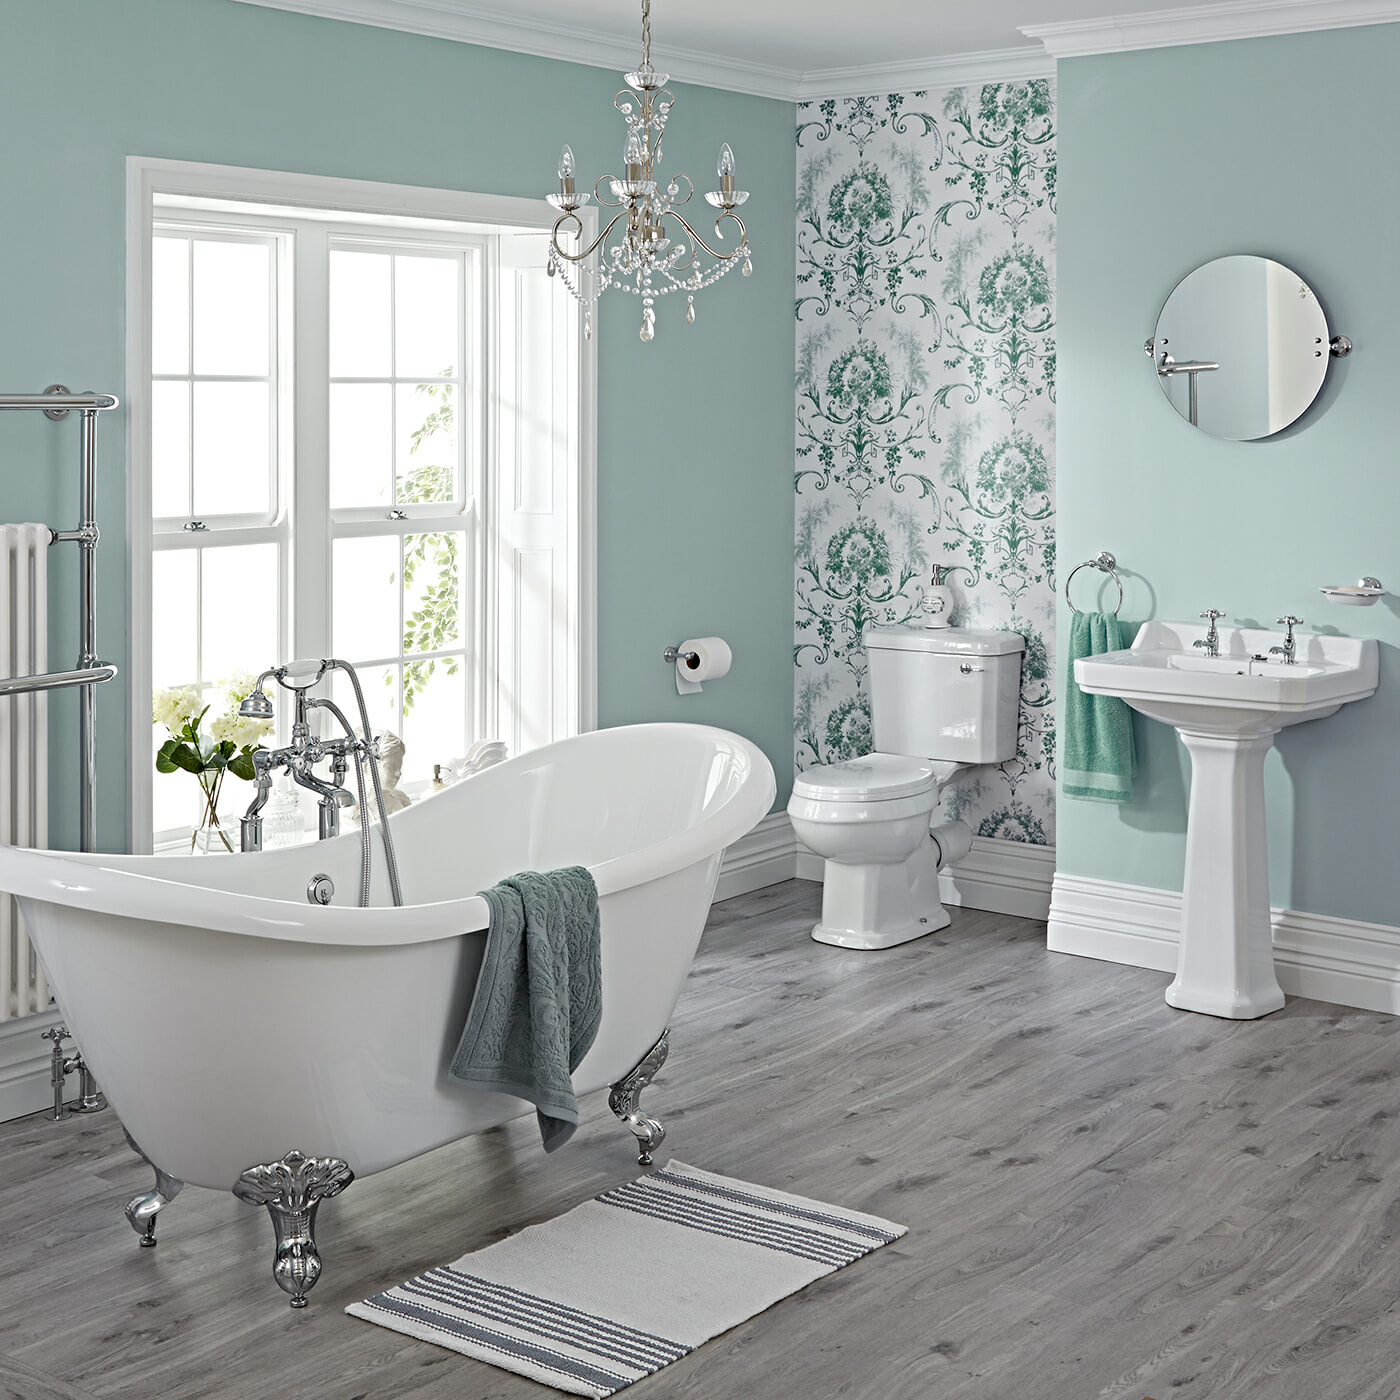 Bathroom Décor Ideas that Make a Statement | Big Bathroom Shop